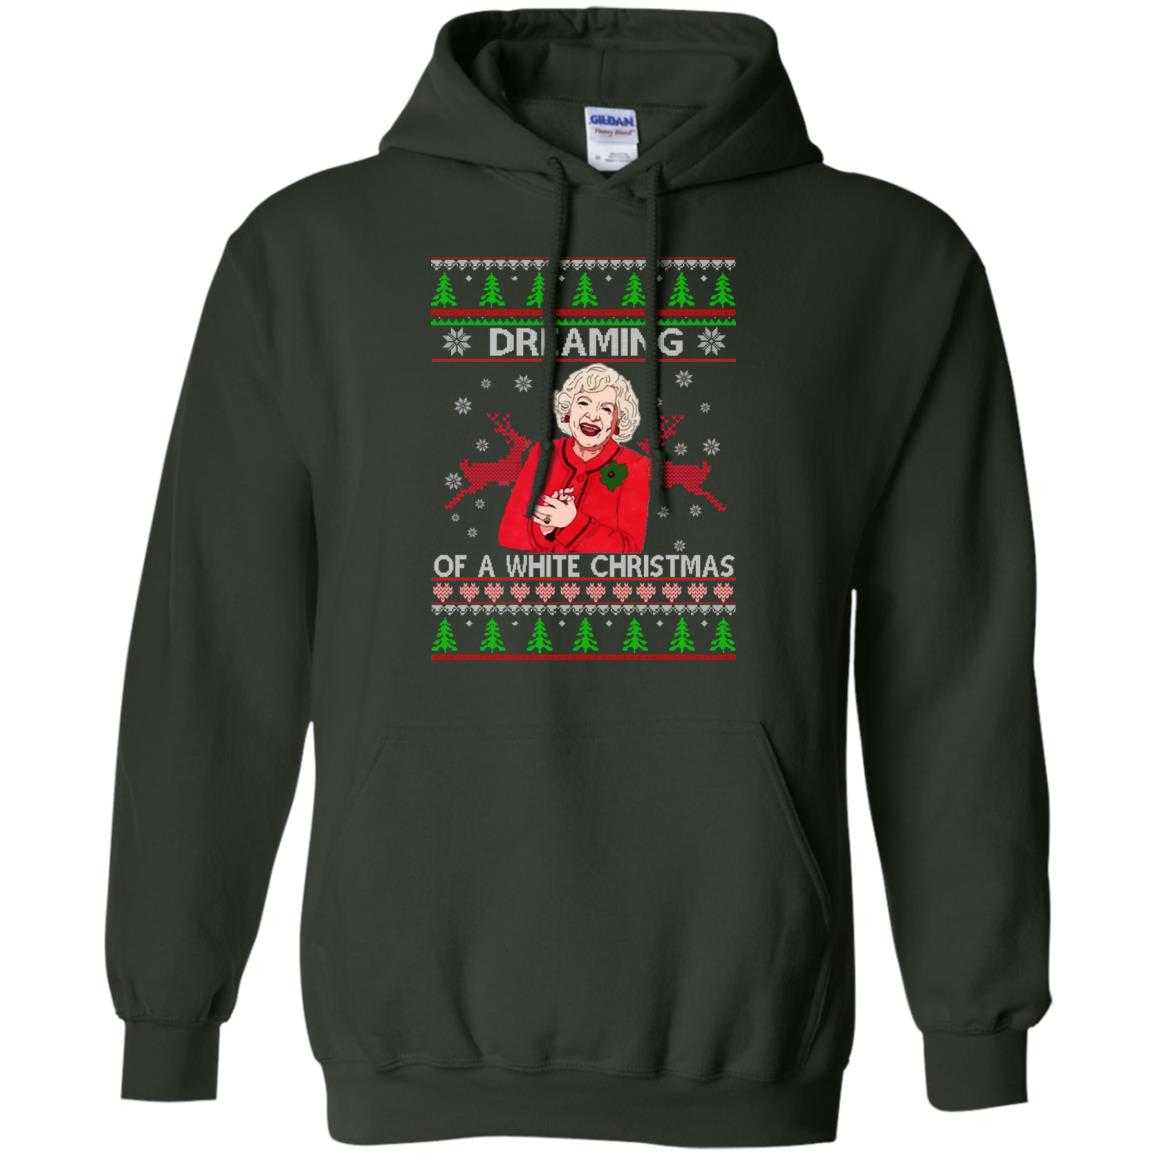 golden girls dreaming of a white christmas sweater hoodie long sleeve image